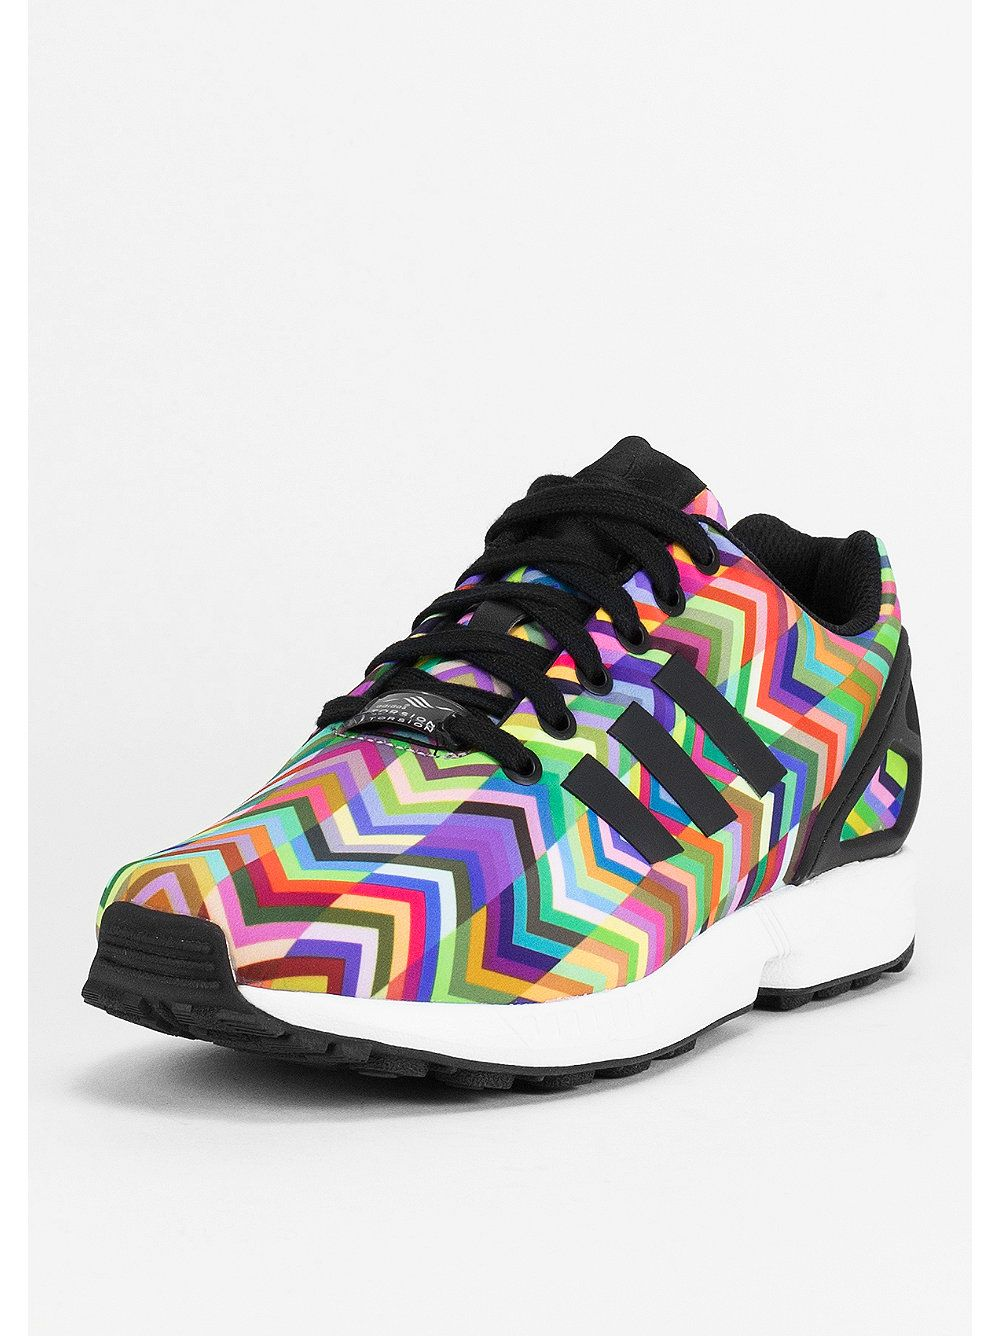 5ab69f90630 Adidas ZX FLUX multicolor | Adidas | Shoes sneakers, Adidas shoes ...